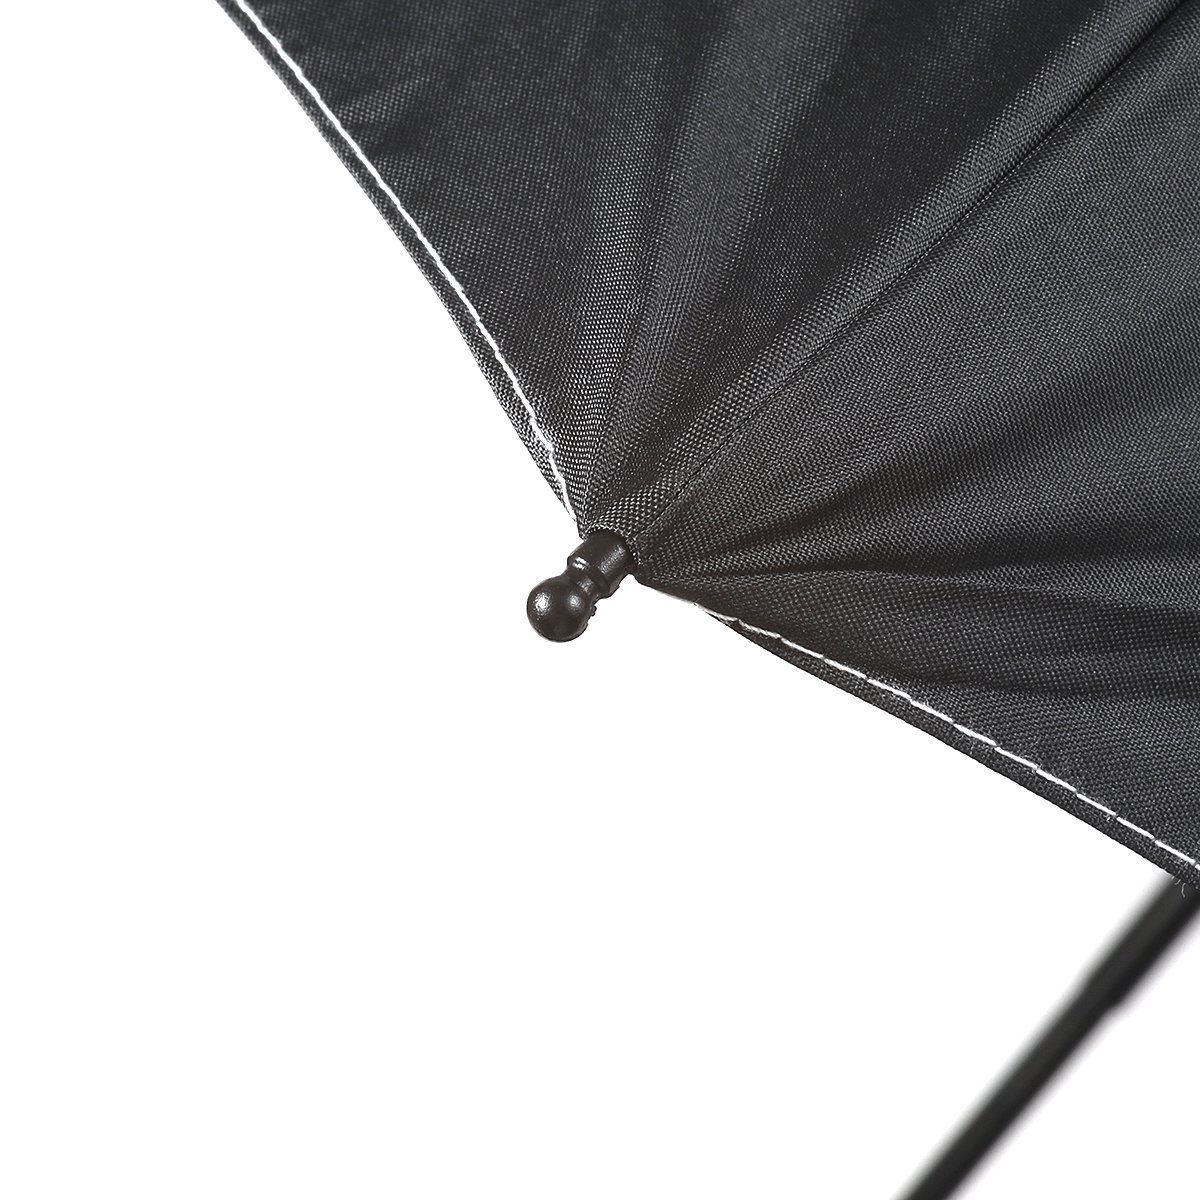 608K UV FOLDING UMBRELLA 詳細画像7